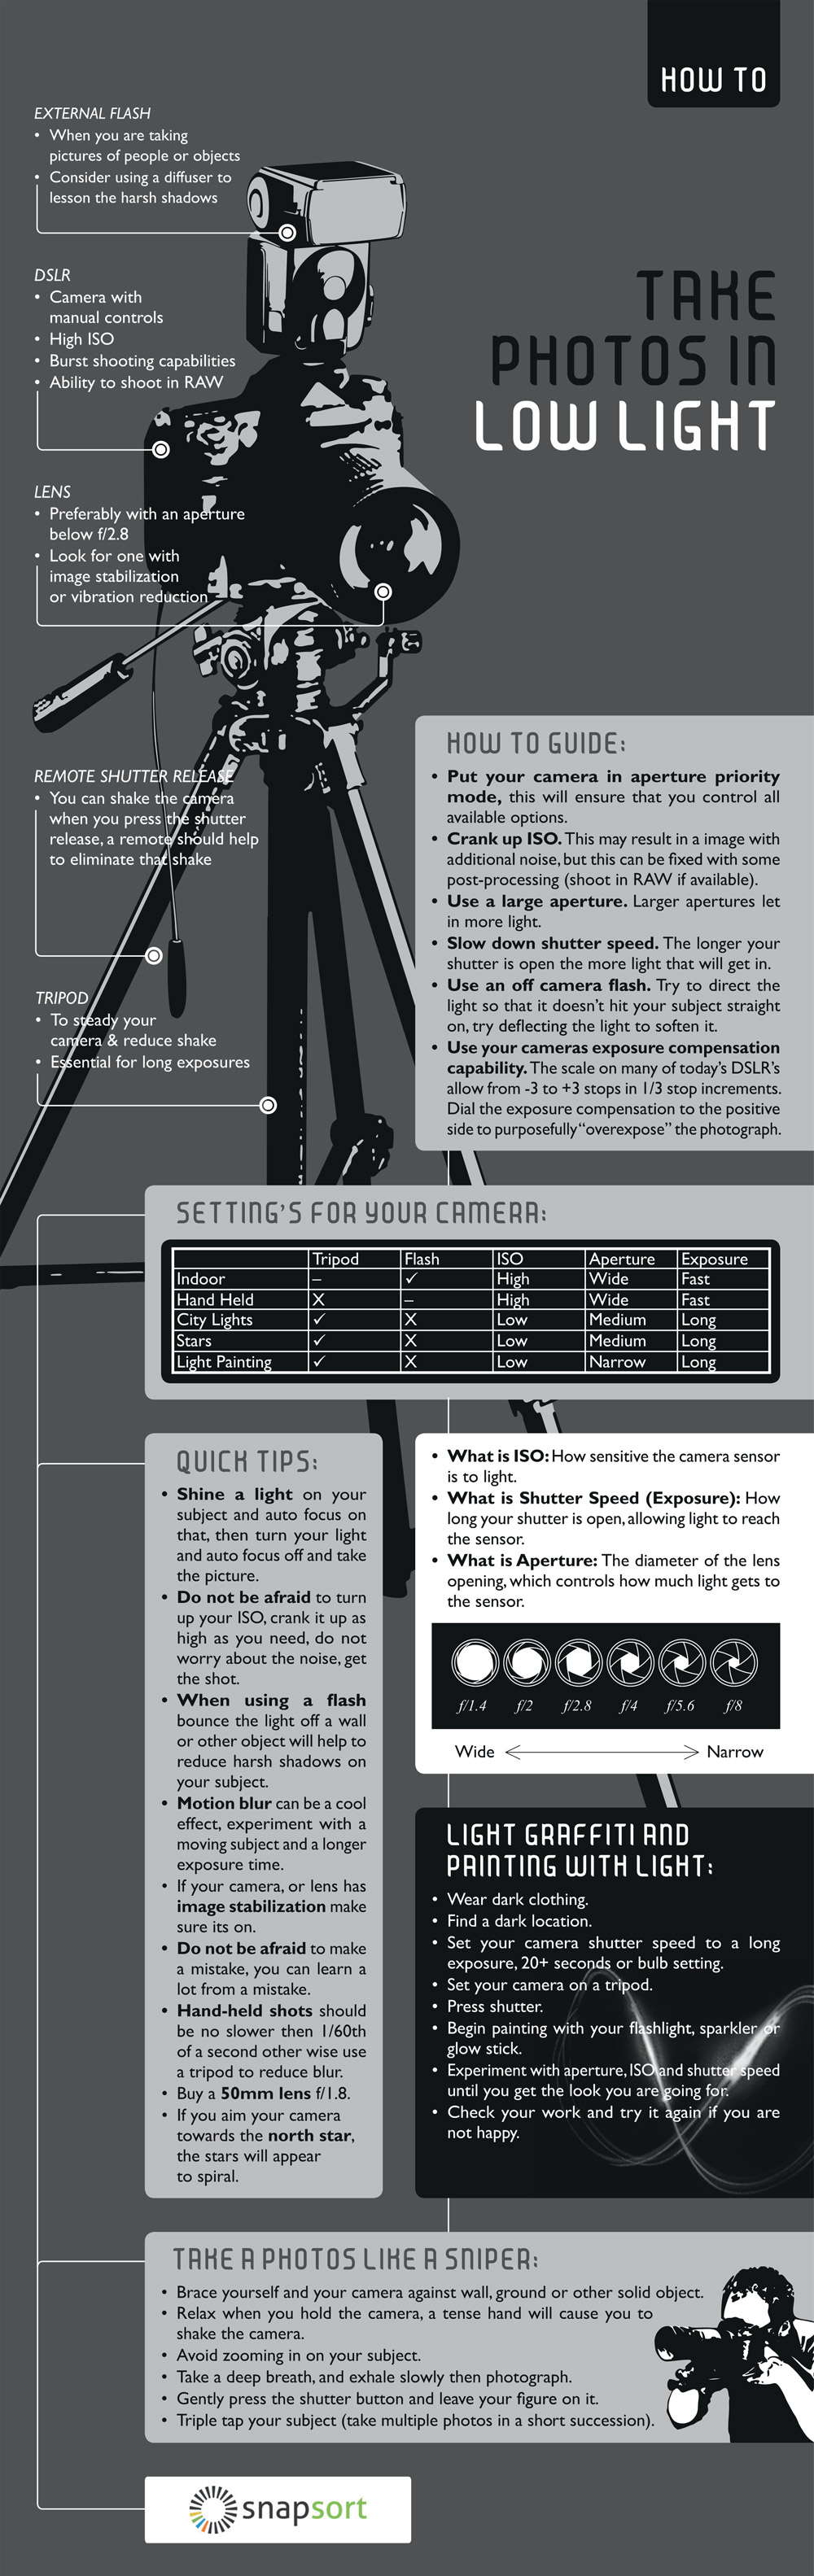 Ultimate Tips For Low Light Photography [Infographic]